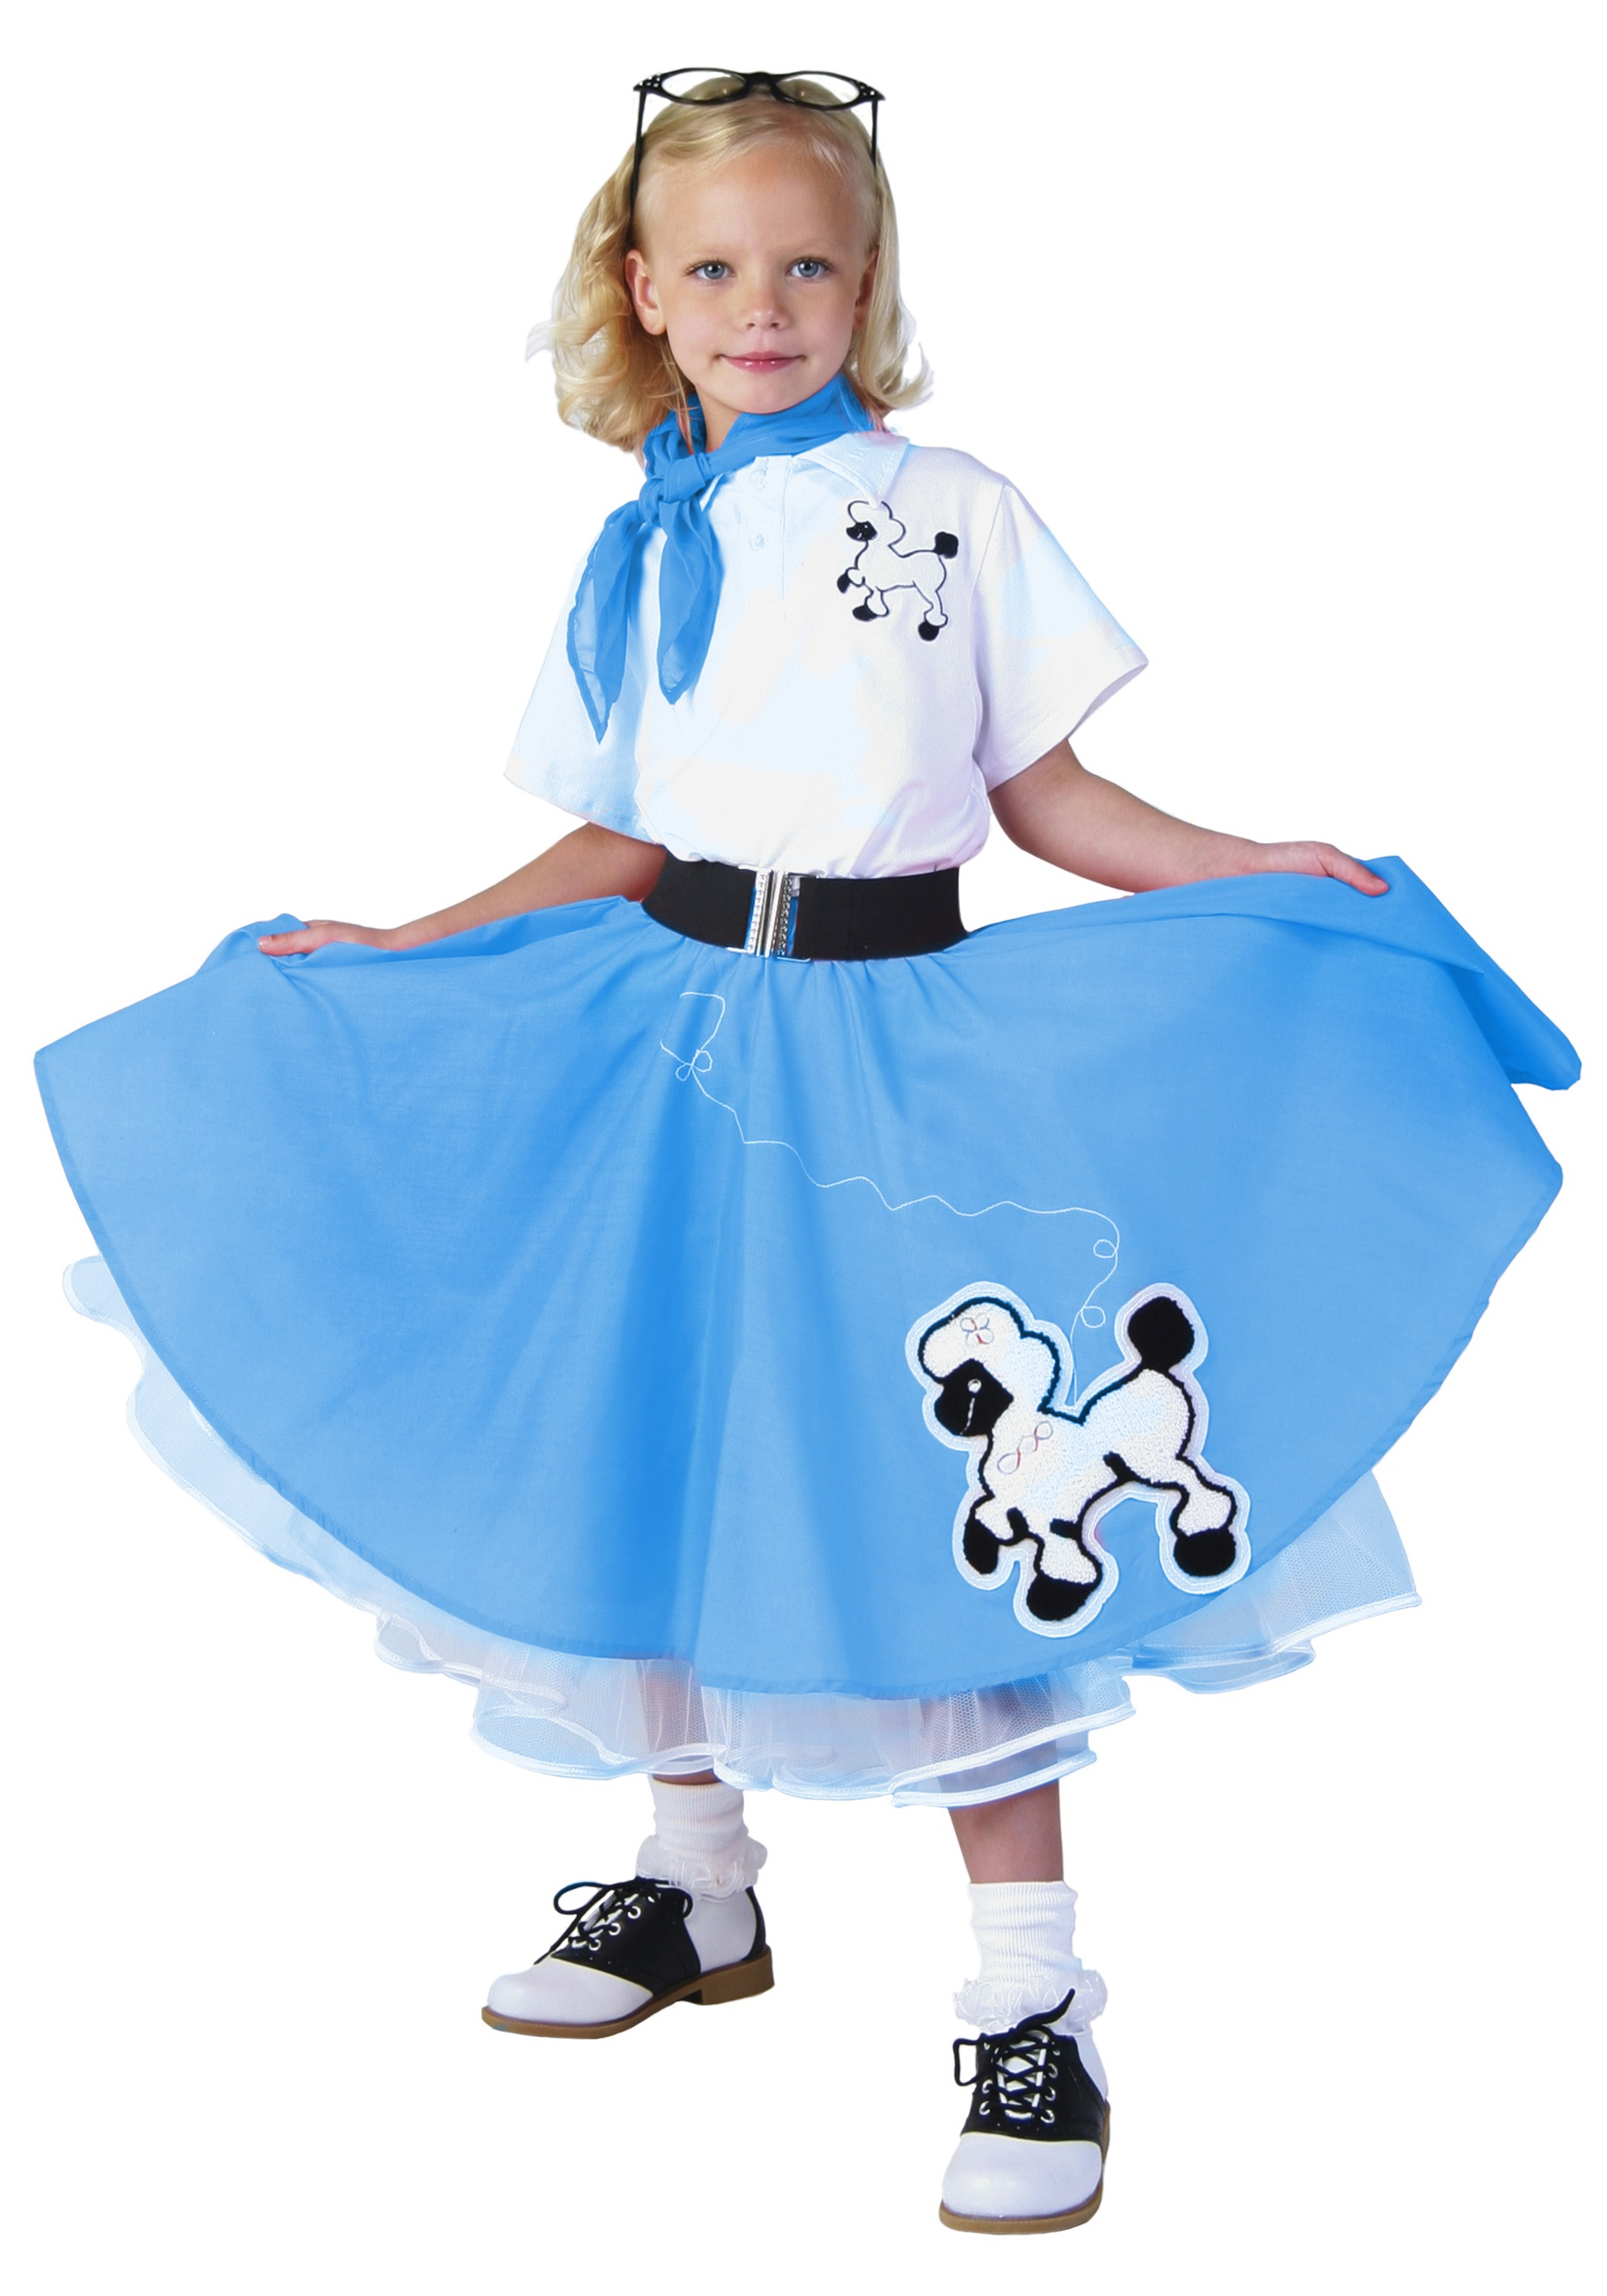 Kids Deluxe Blue Poodle Skirt Costume